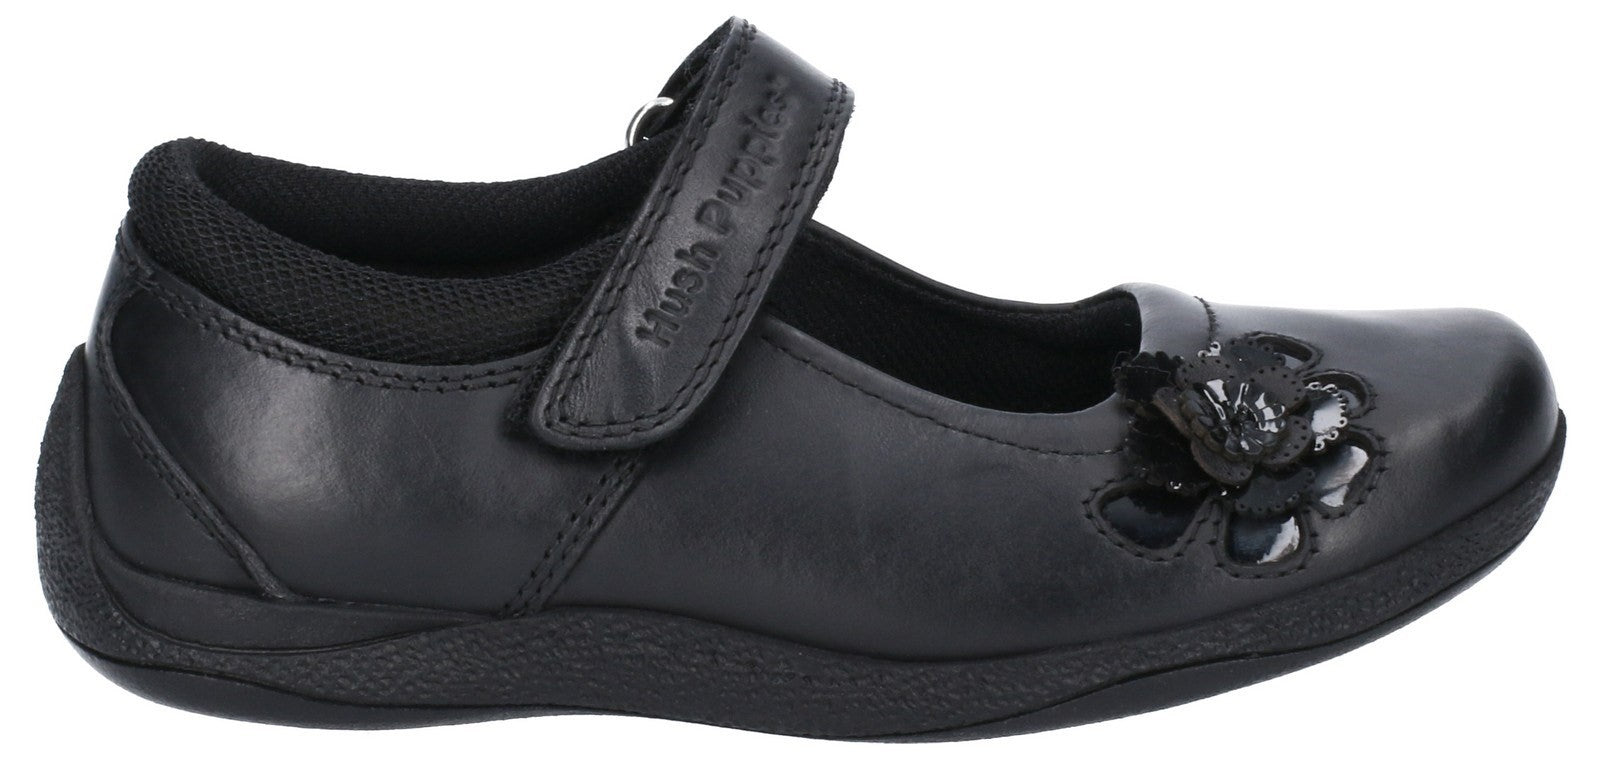 Hush Puppies Women's Jessica Jnr Touch School Shoe Various Colours 28981